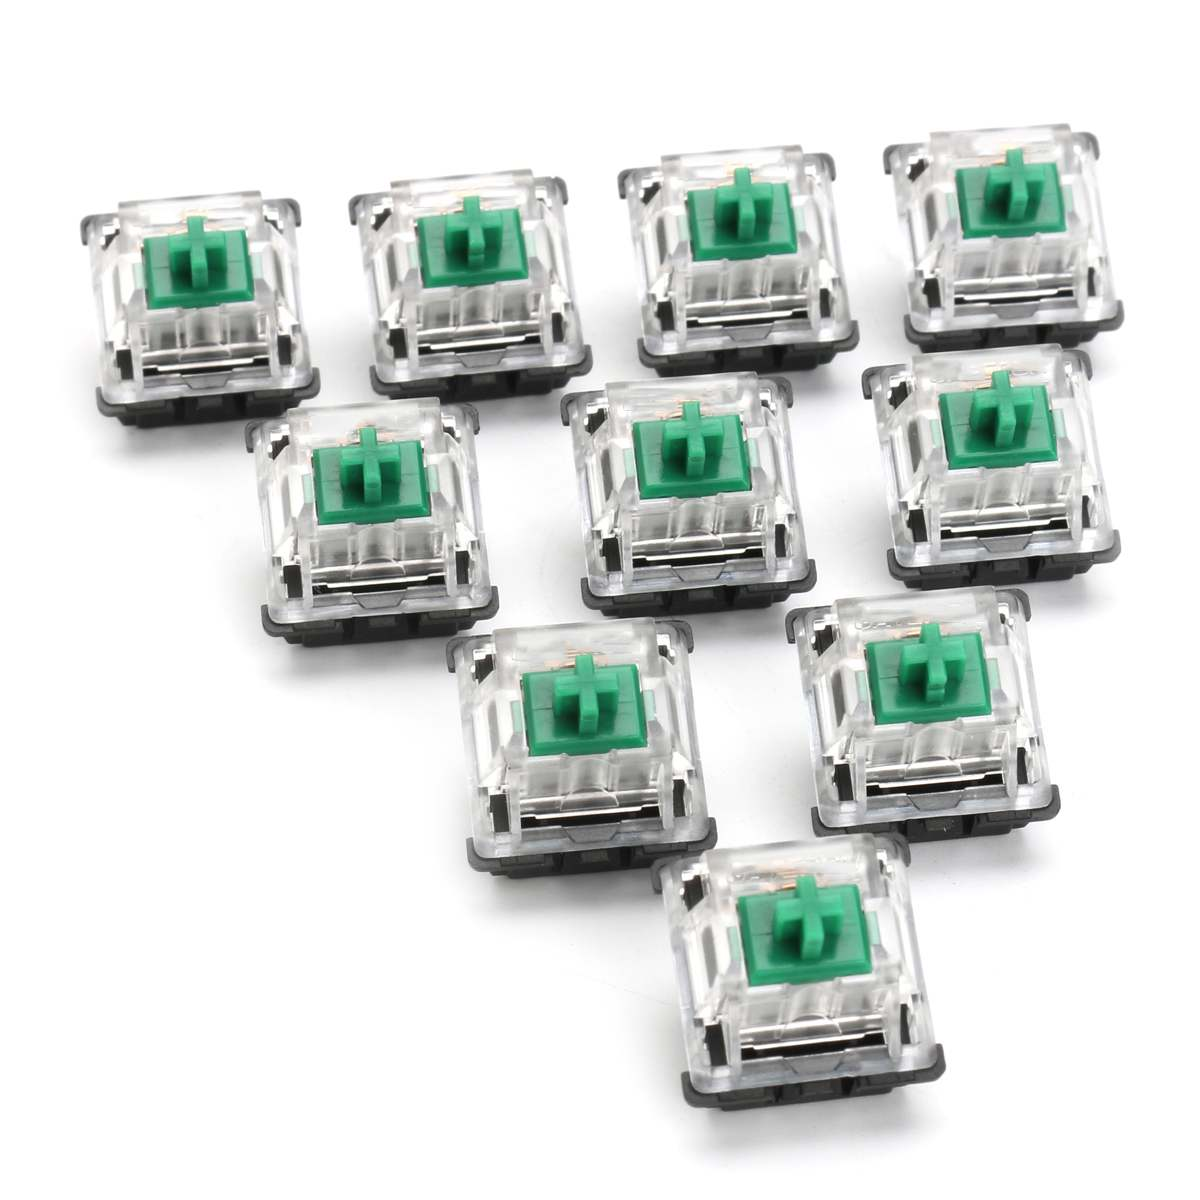 10Pcs RGB <font><b>Mechanical</b></font> <font><b>Keyboard</b></font> Switch 3 Pin for Cherry MX Gateron SMD KeyCap Green Switch <font><b>Keyboard</b></font> Replacement Sampler <font><b>Tester</b></font> Kit image